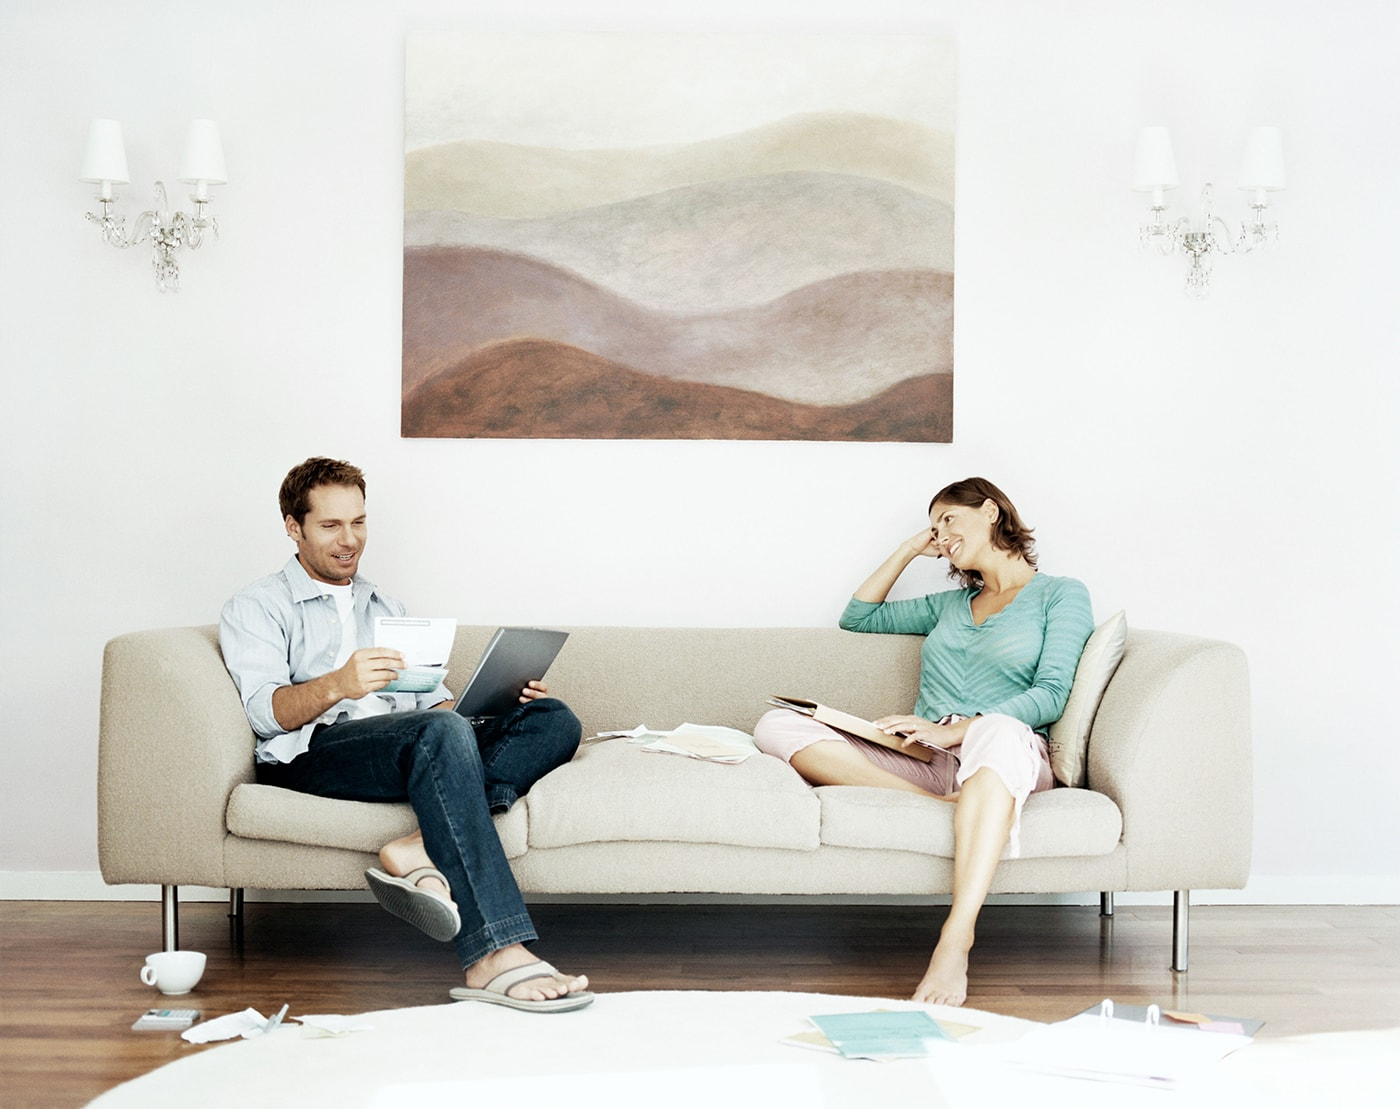 How to Manage Your Credit During a Divorce article image.